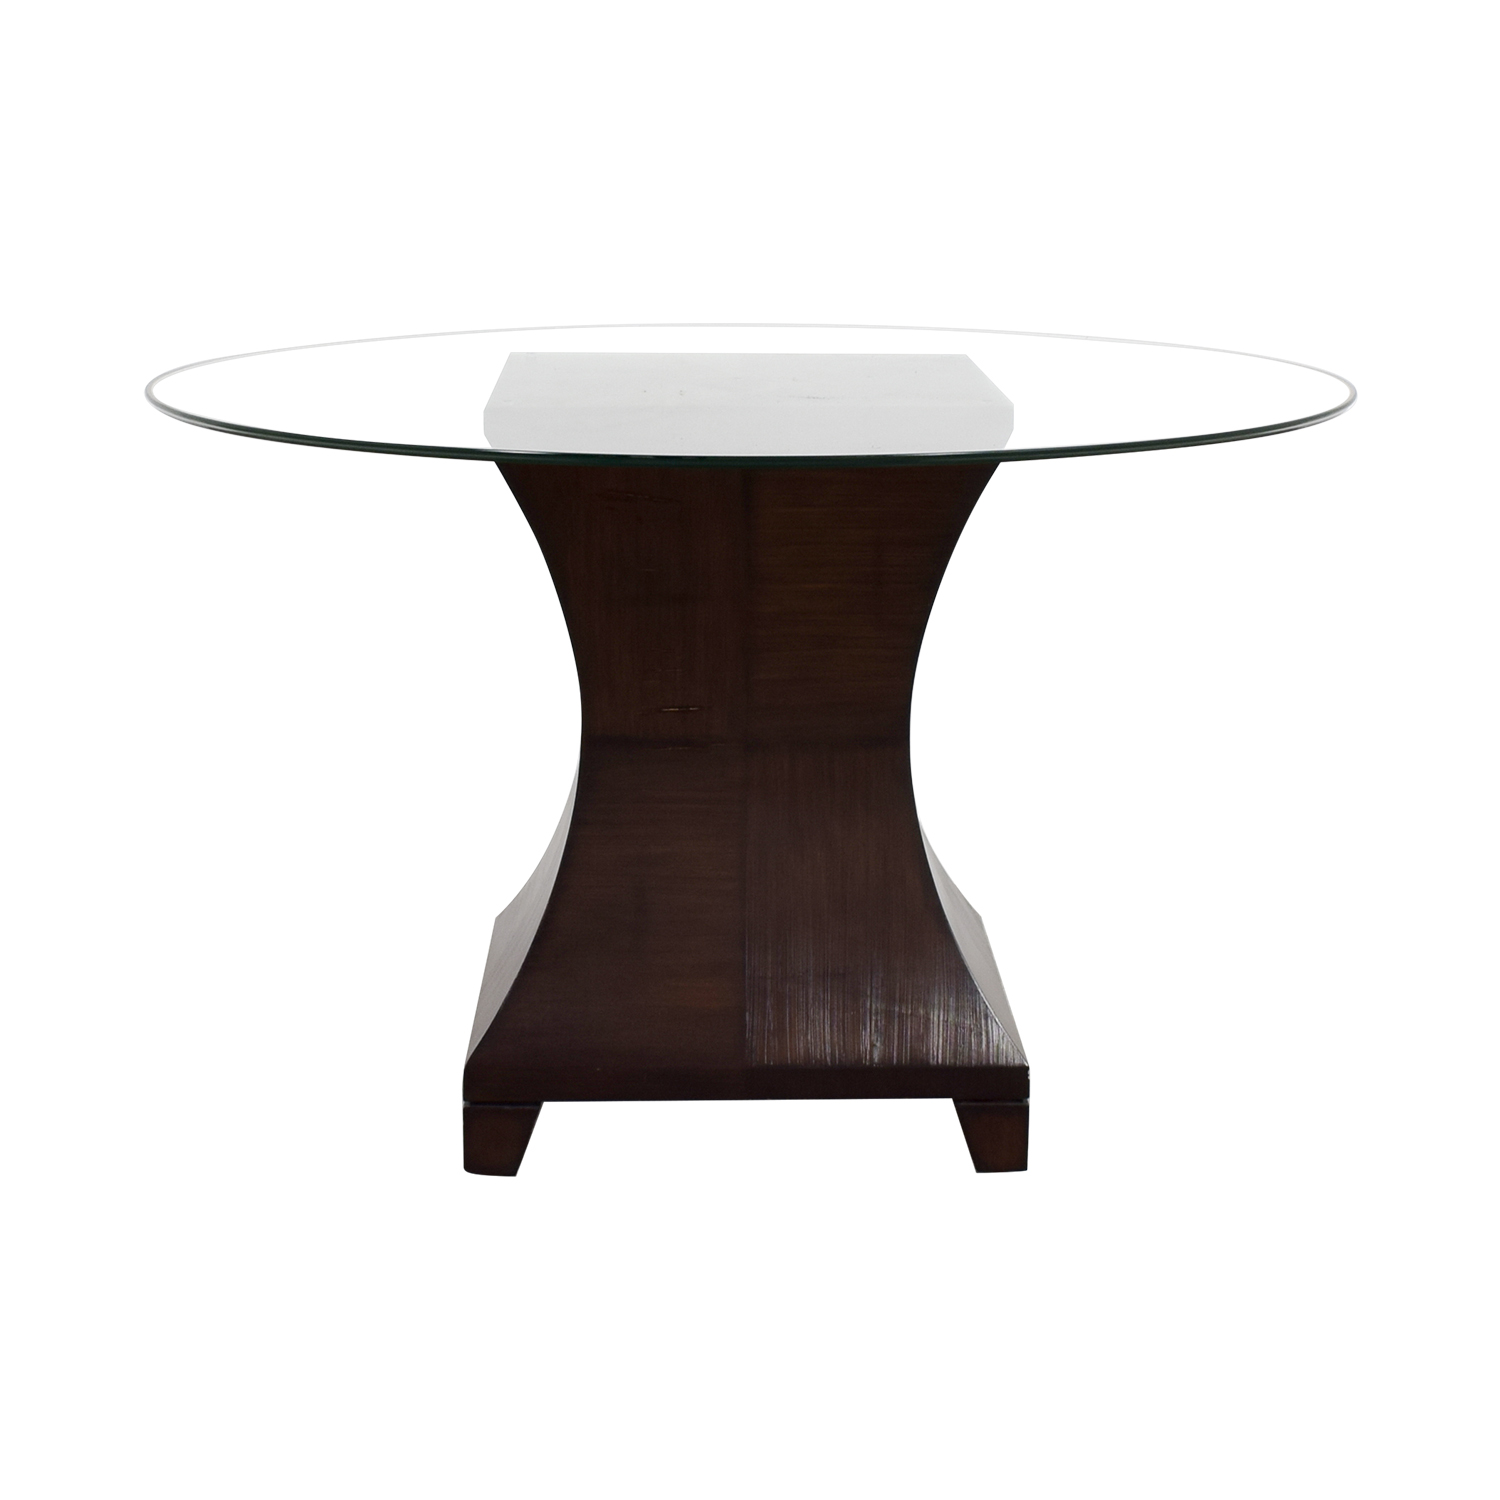 Round glass top dining table full size of kitchen table Round glass table top